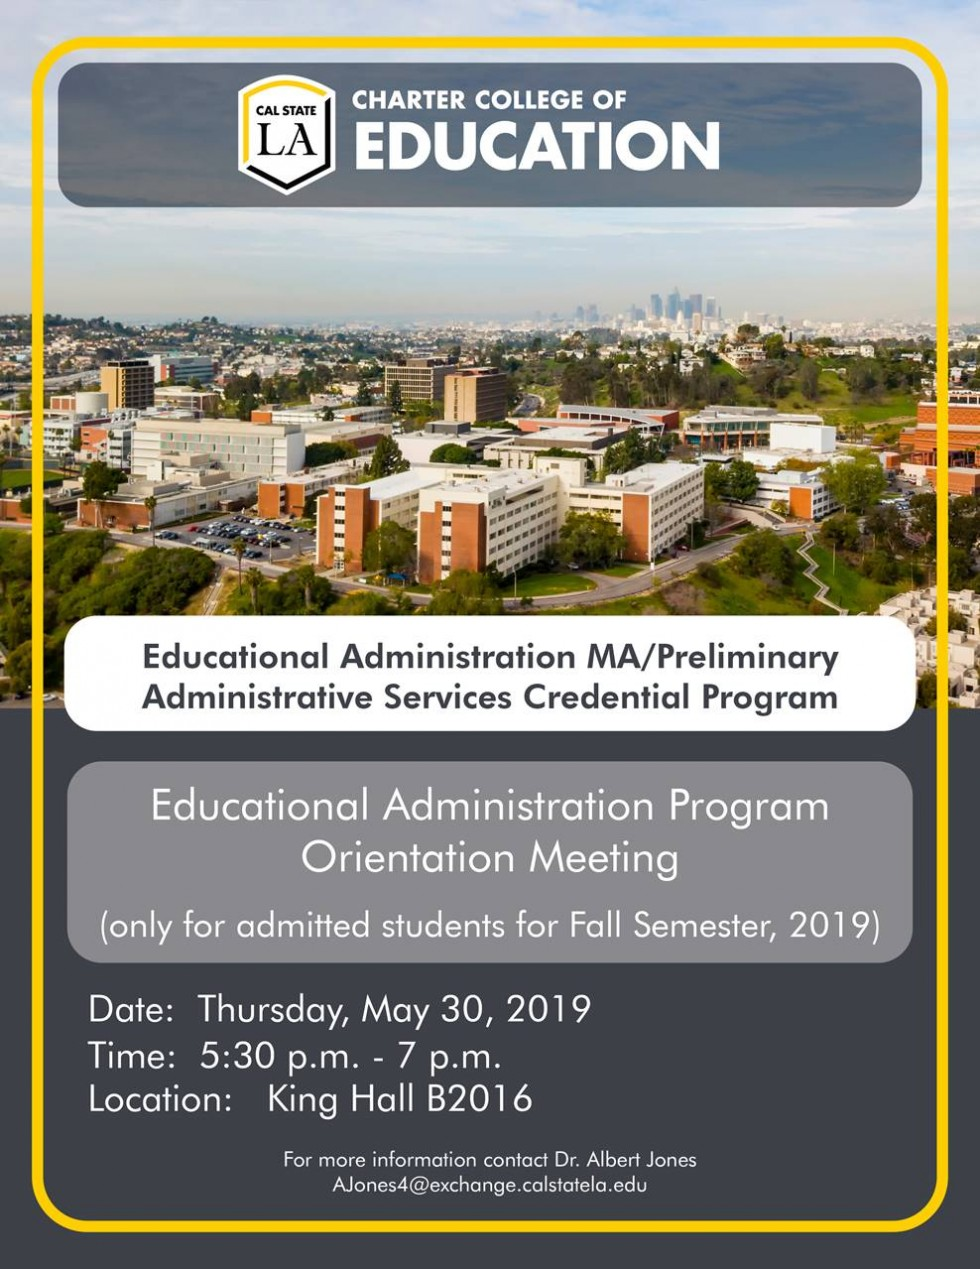 Educational Administration Orientation Meeting